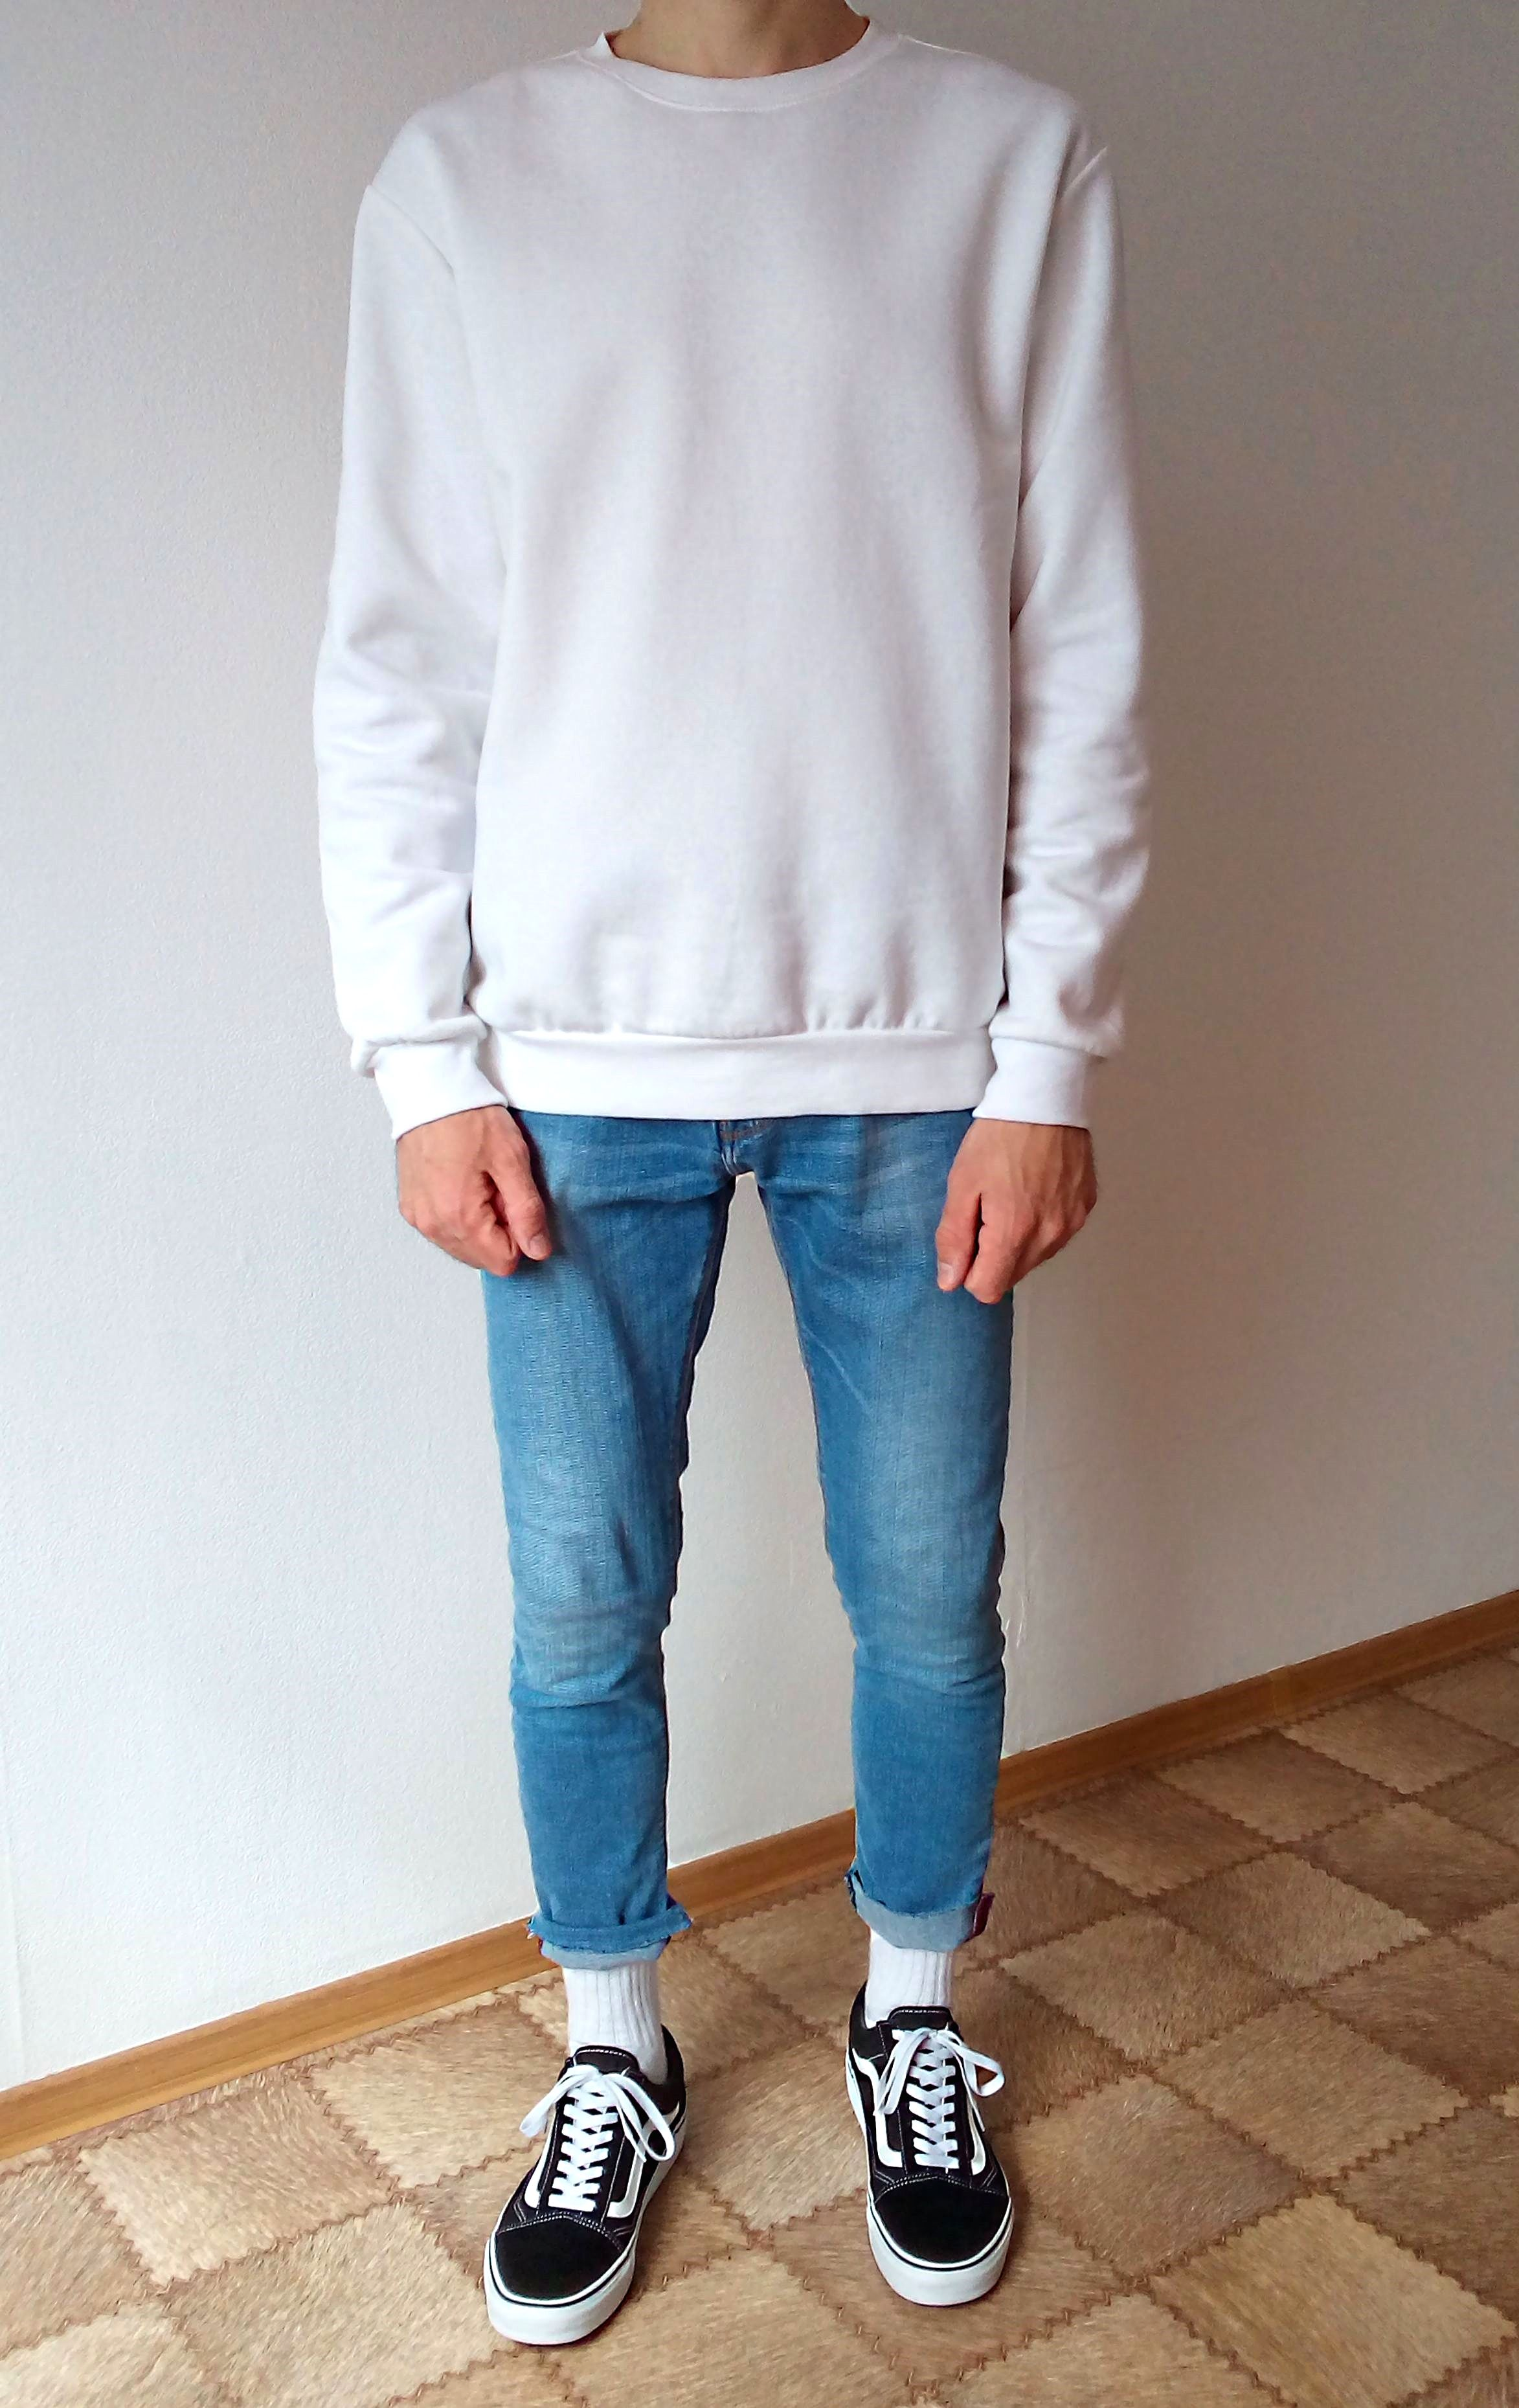 vans old skool skinny jeans boys guys outfit | vans love